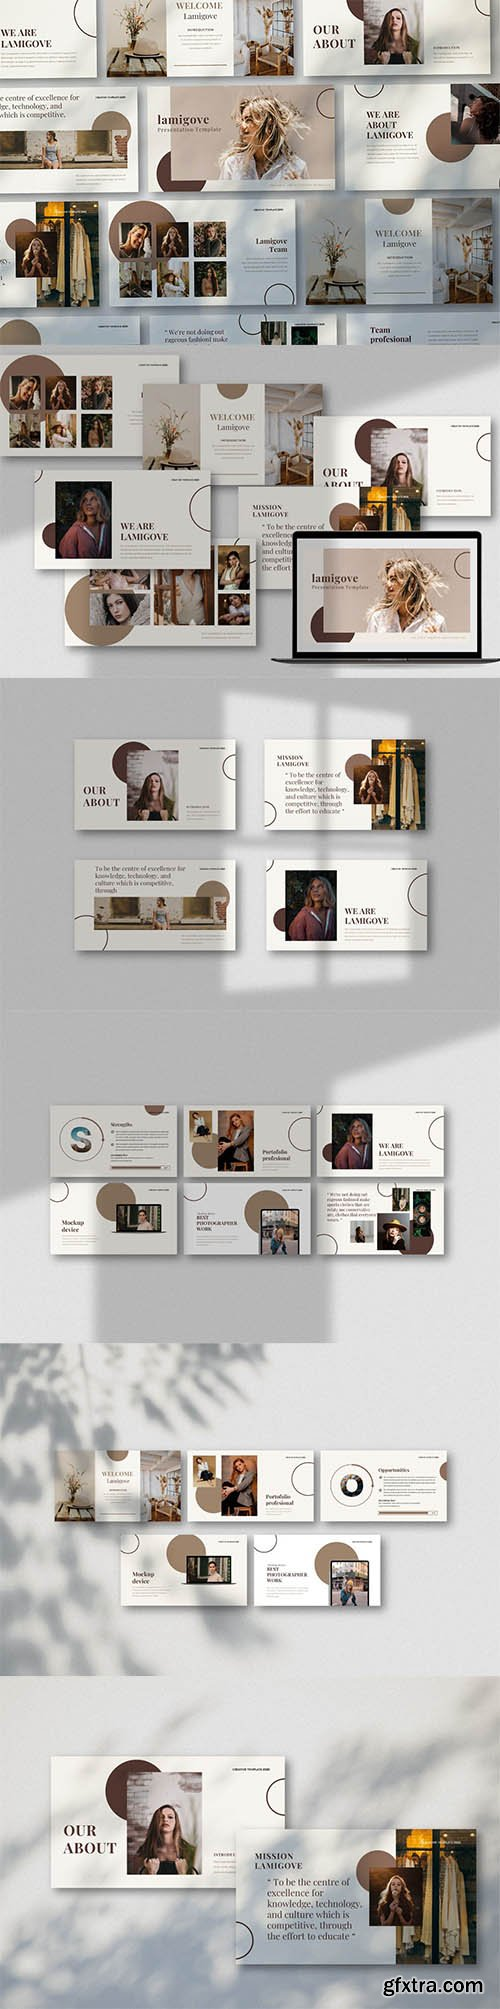 lamigove Creative Powerpoint, Keynote and Google Slides Template